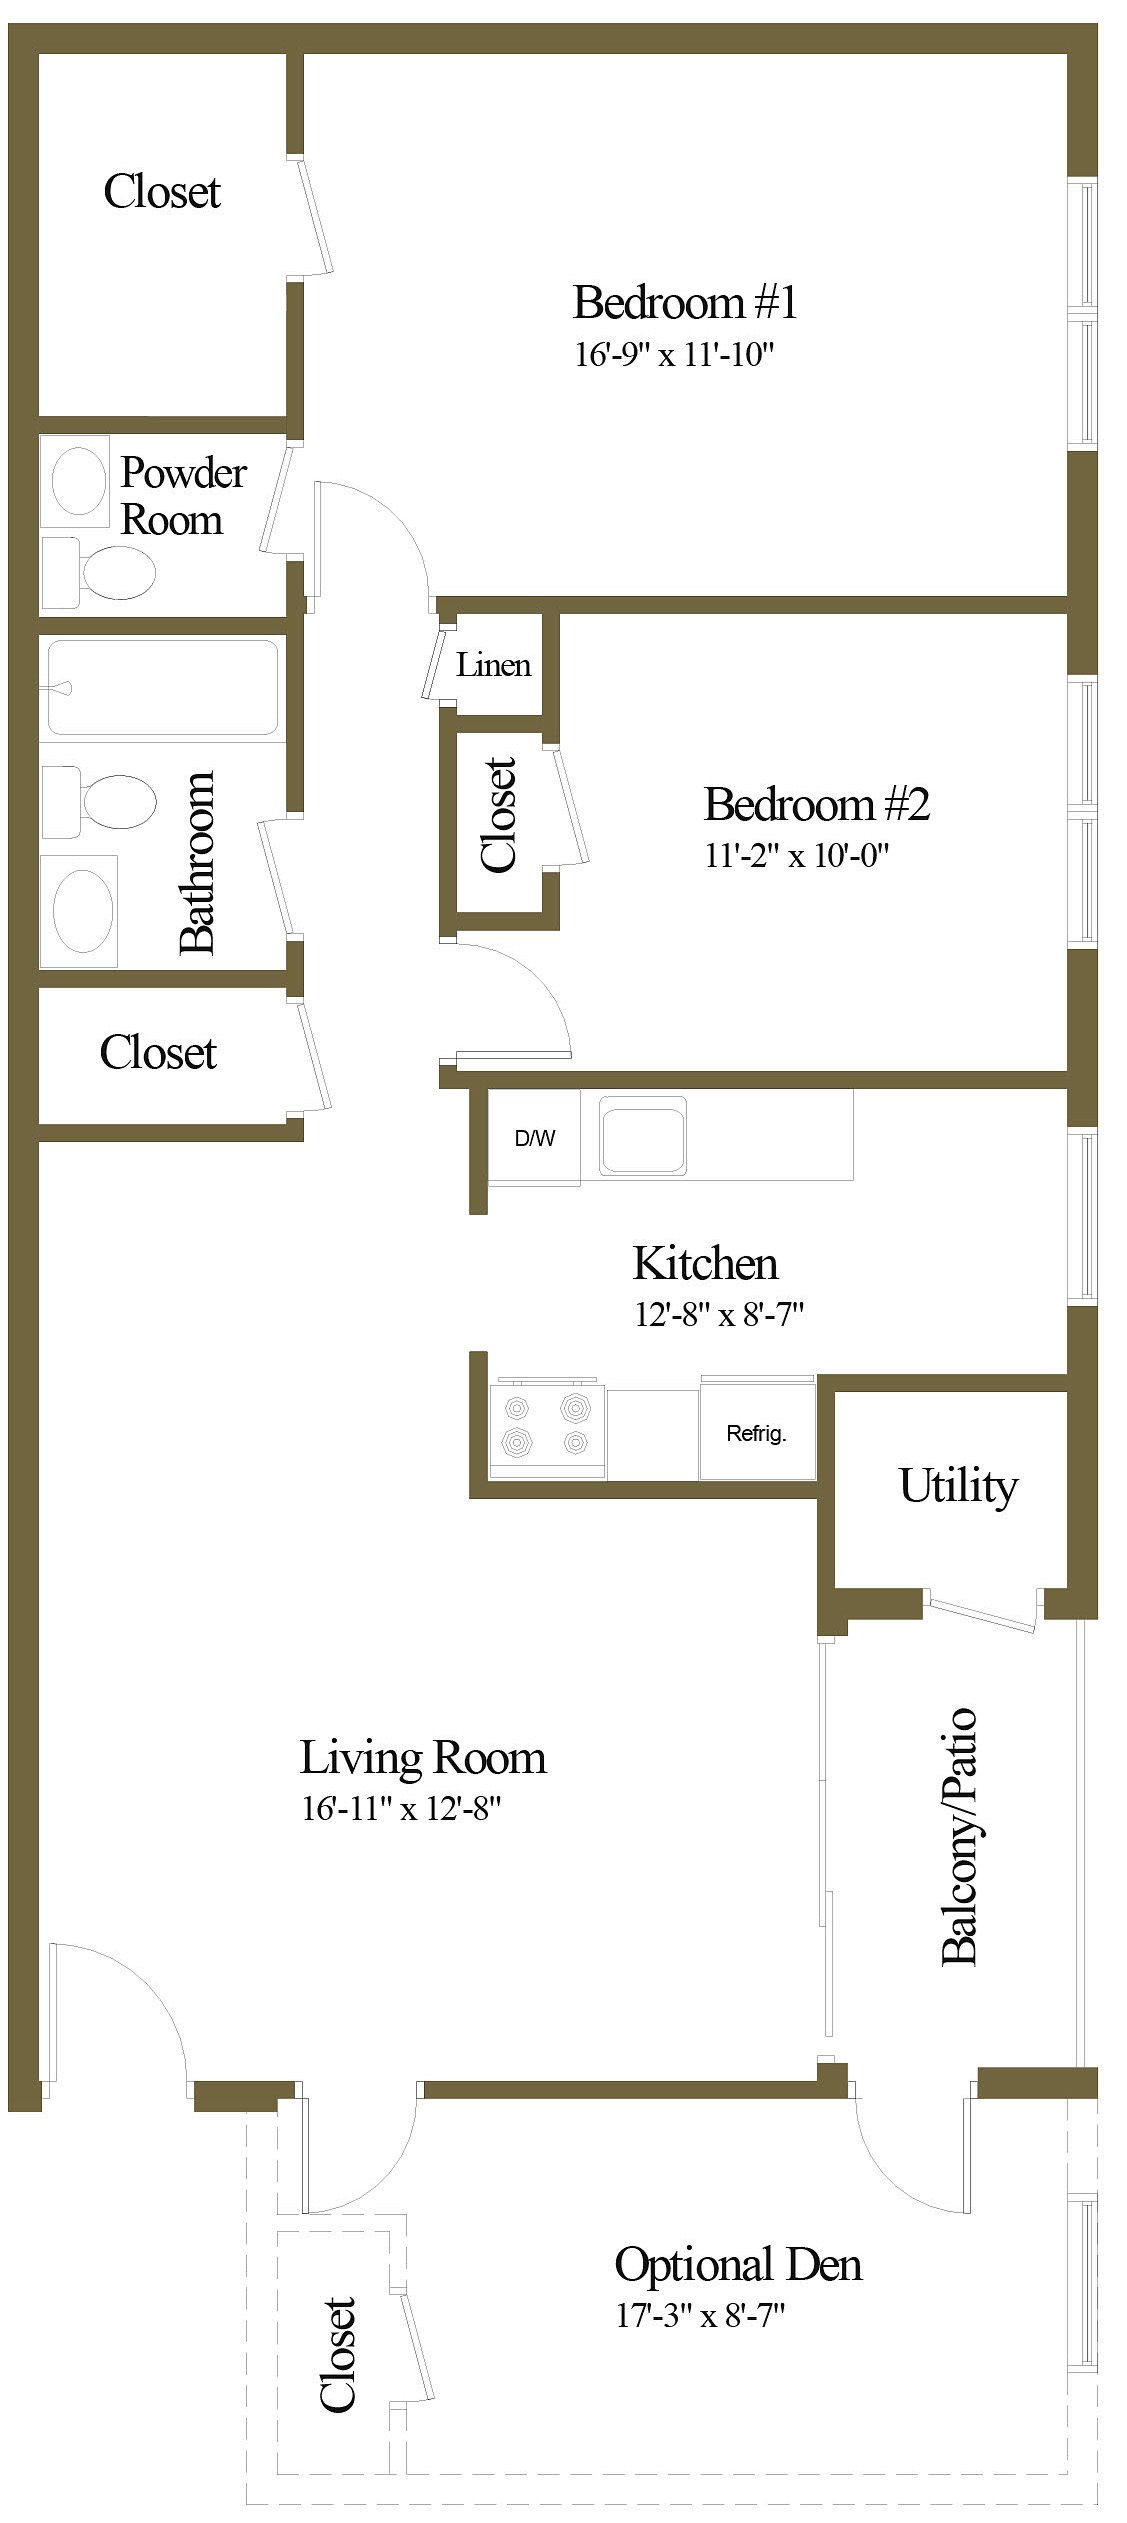 floor plans of pine run apartments in baltimore, md